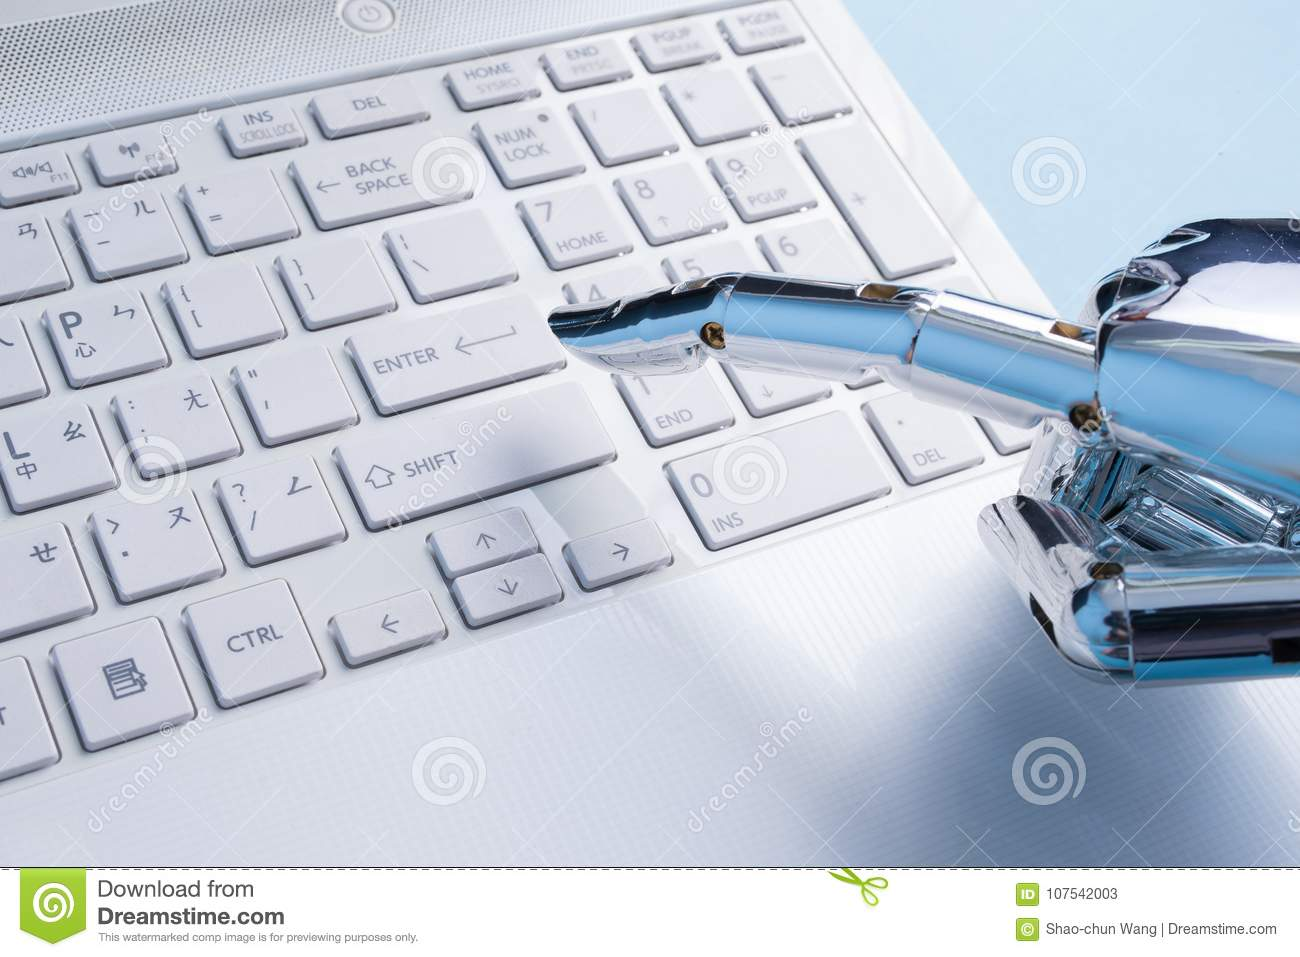 Robot Hand Use Notebook Work Stock Image - Image of laptop